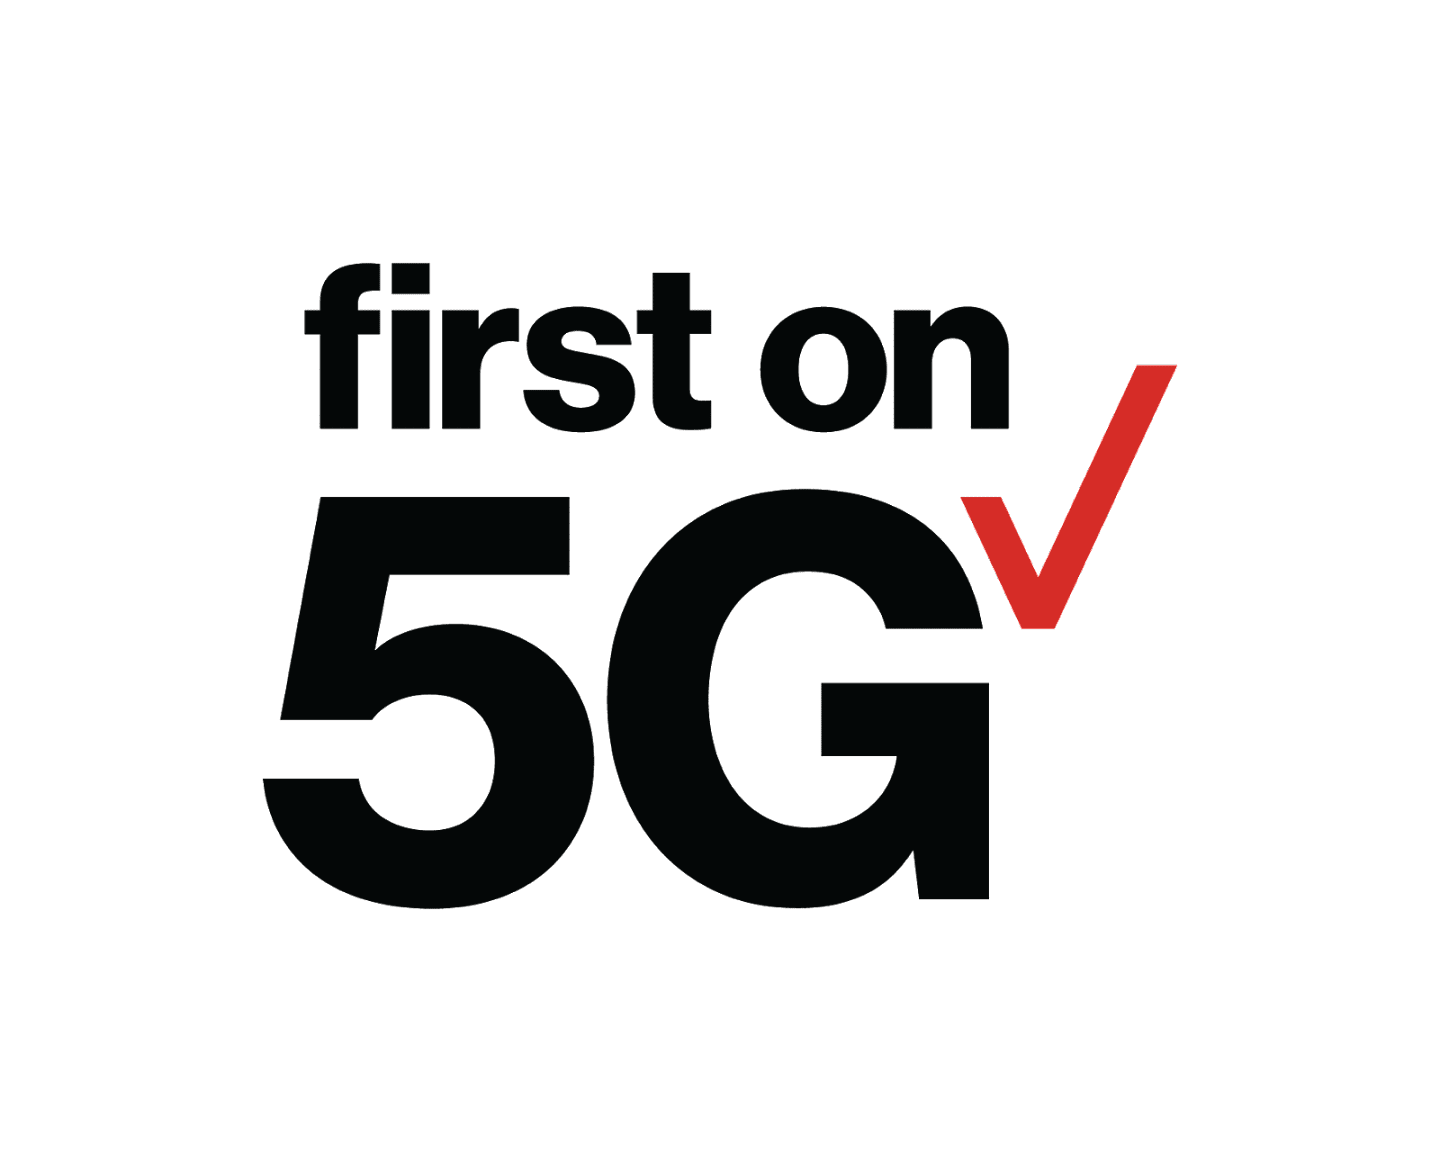 YouTube TV - Verizon 5G Home Internet Extended Free Trial